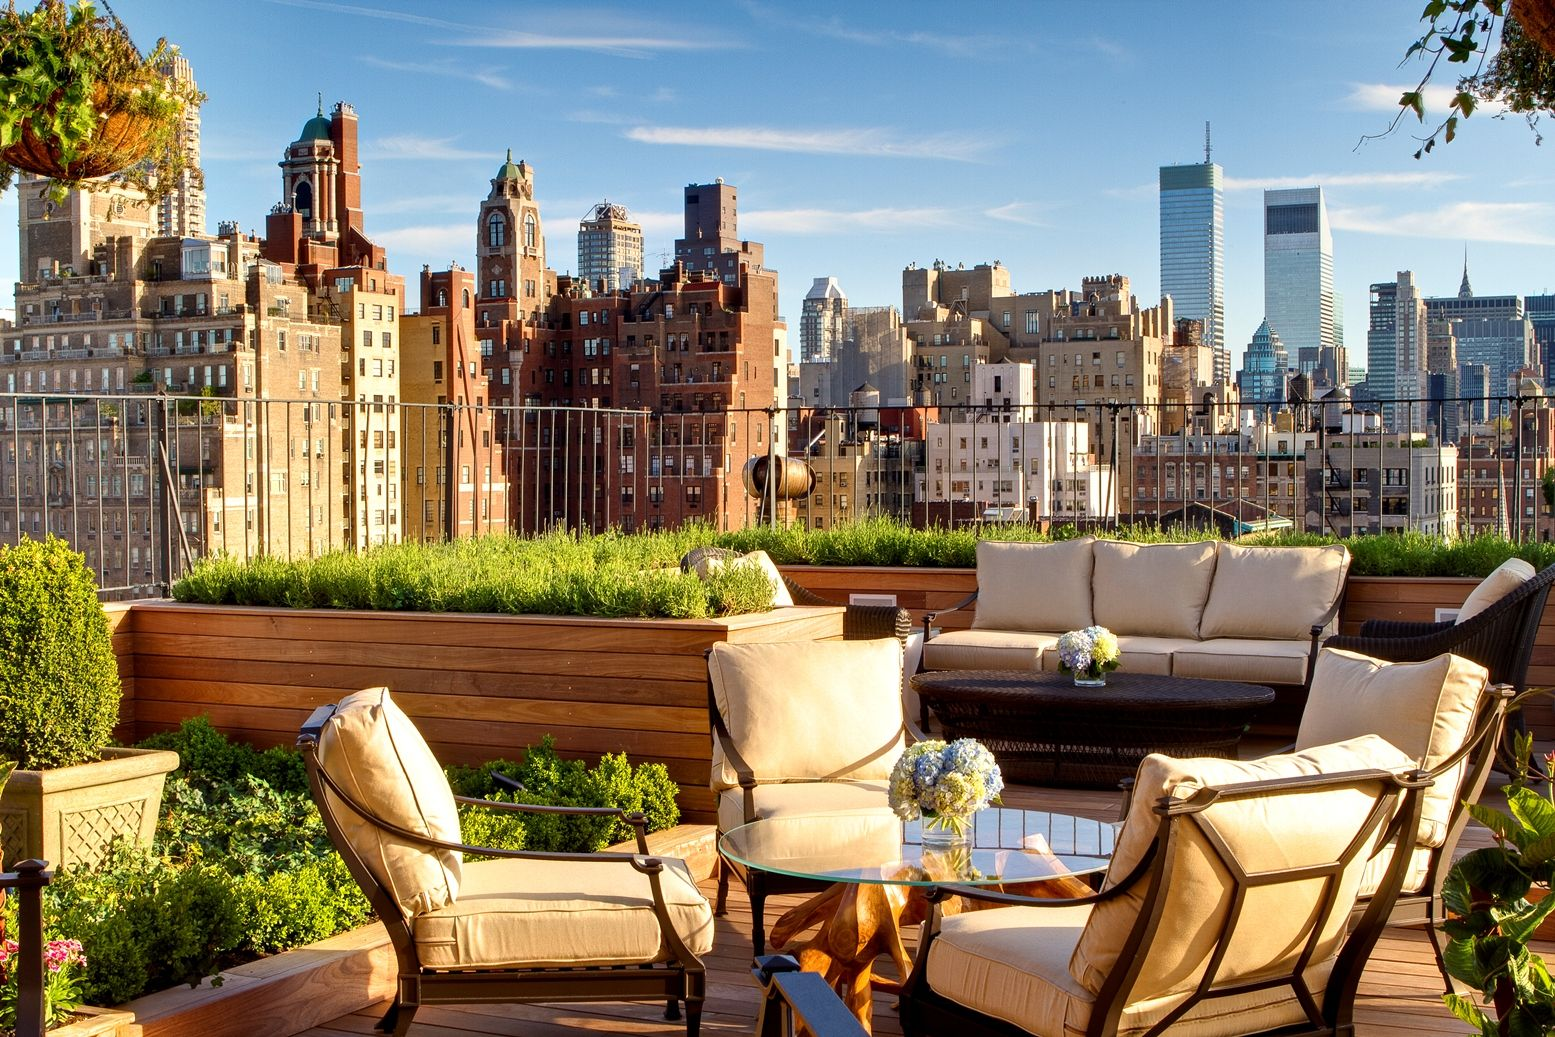 The Surrey On The Upper East Side Luxury Chic New York Hotels Roof Garden Rooftop Garden